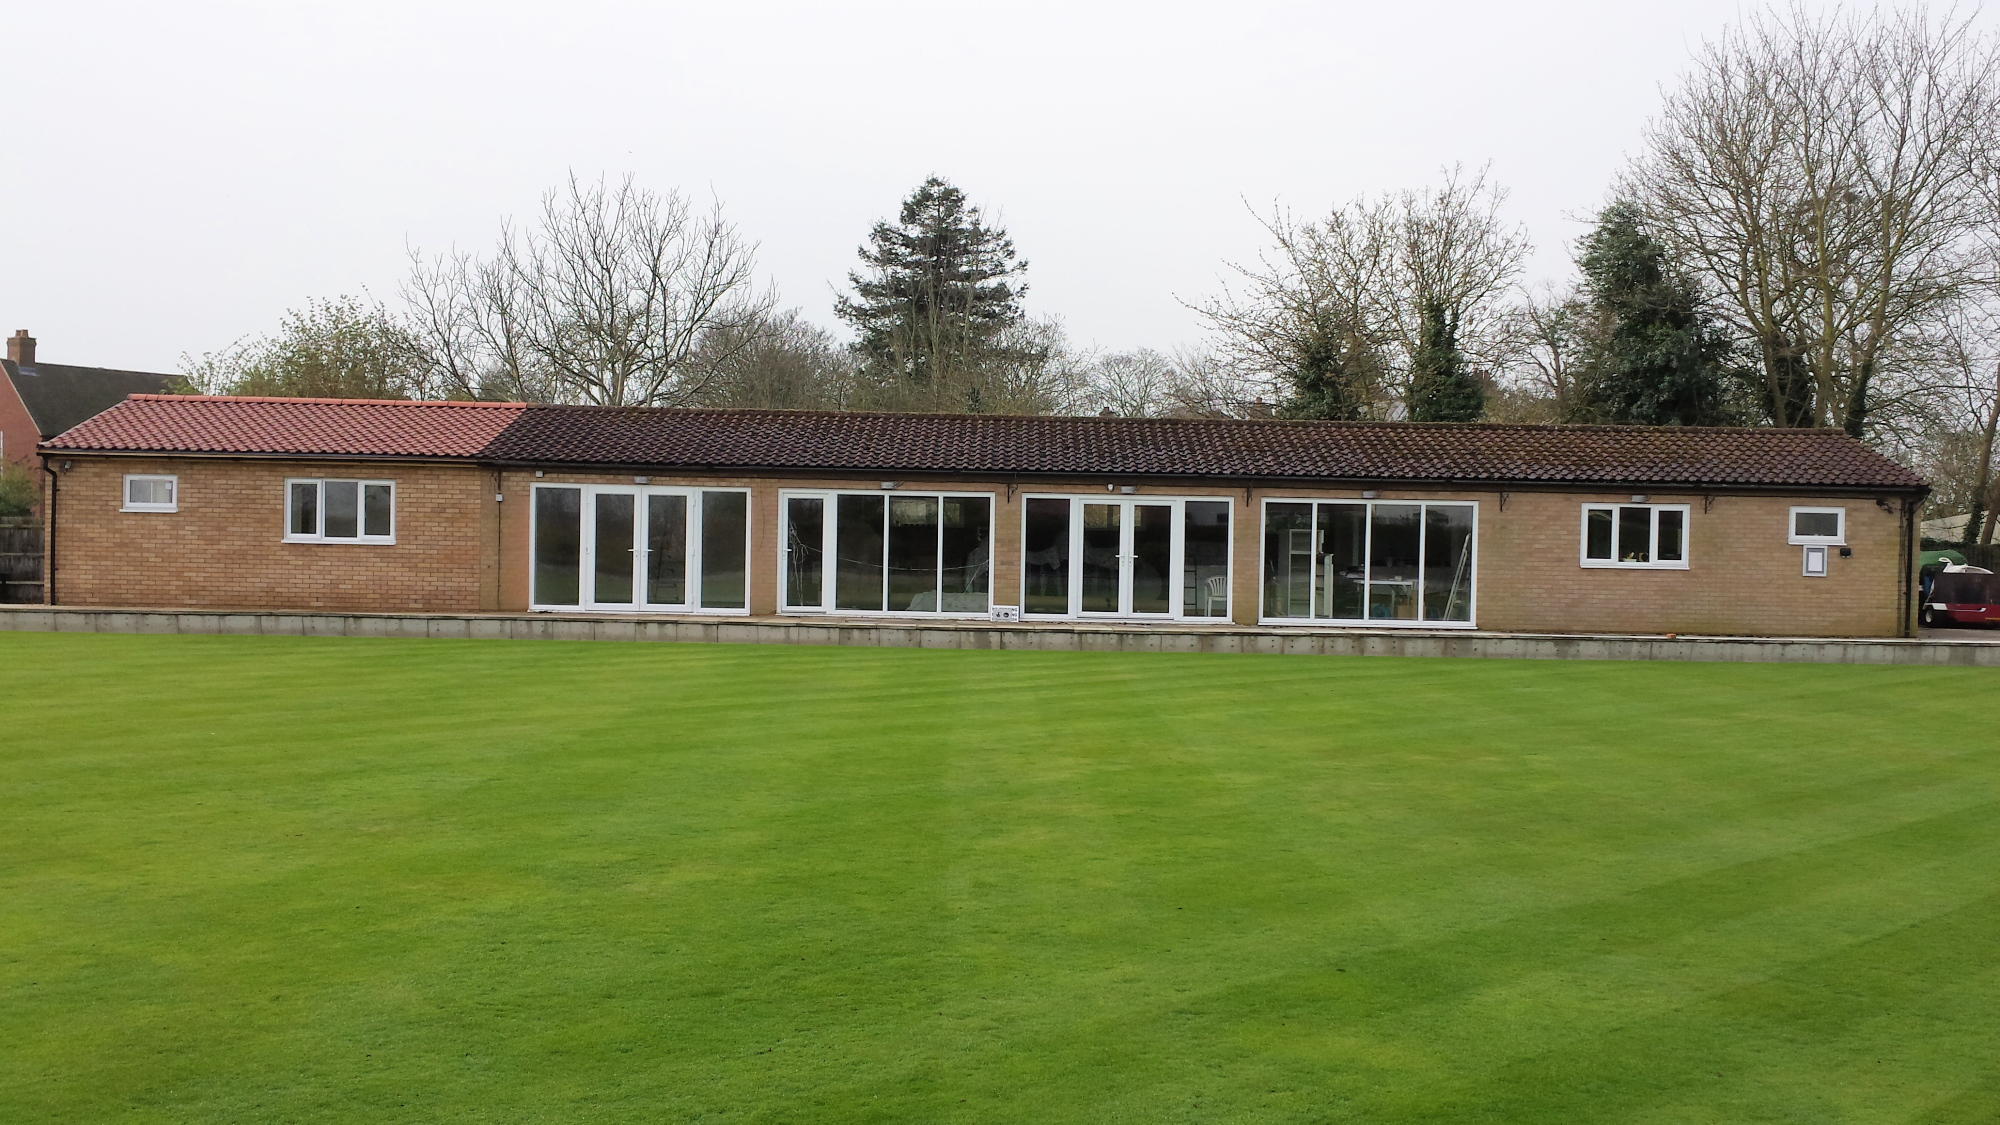 23.3.17 Green and extended Clubhouse